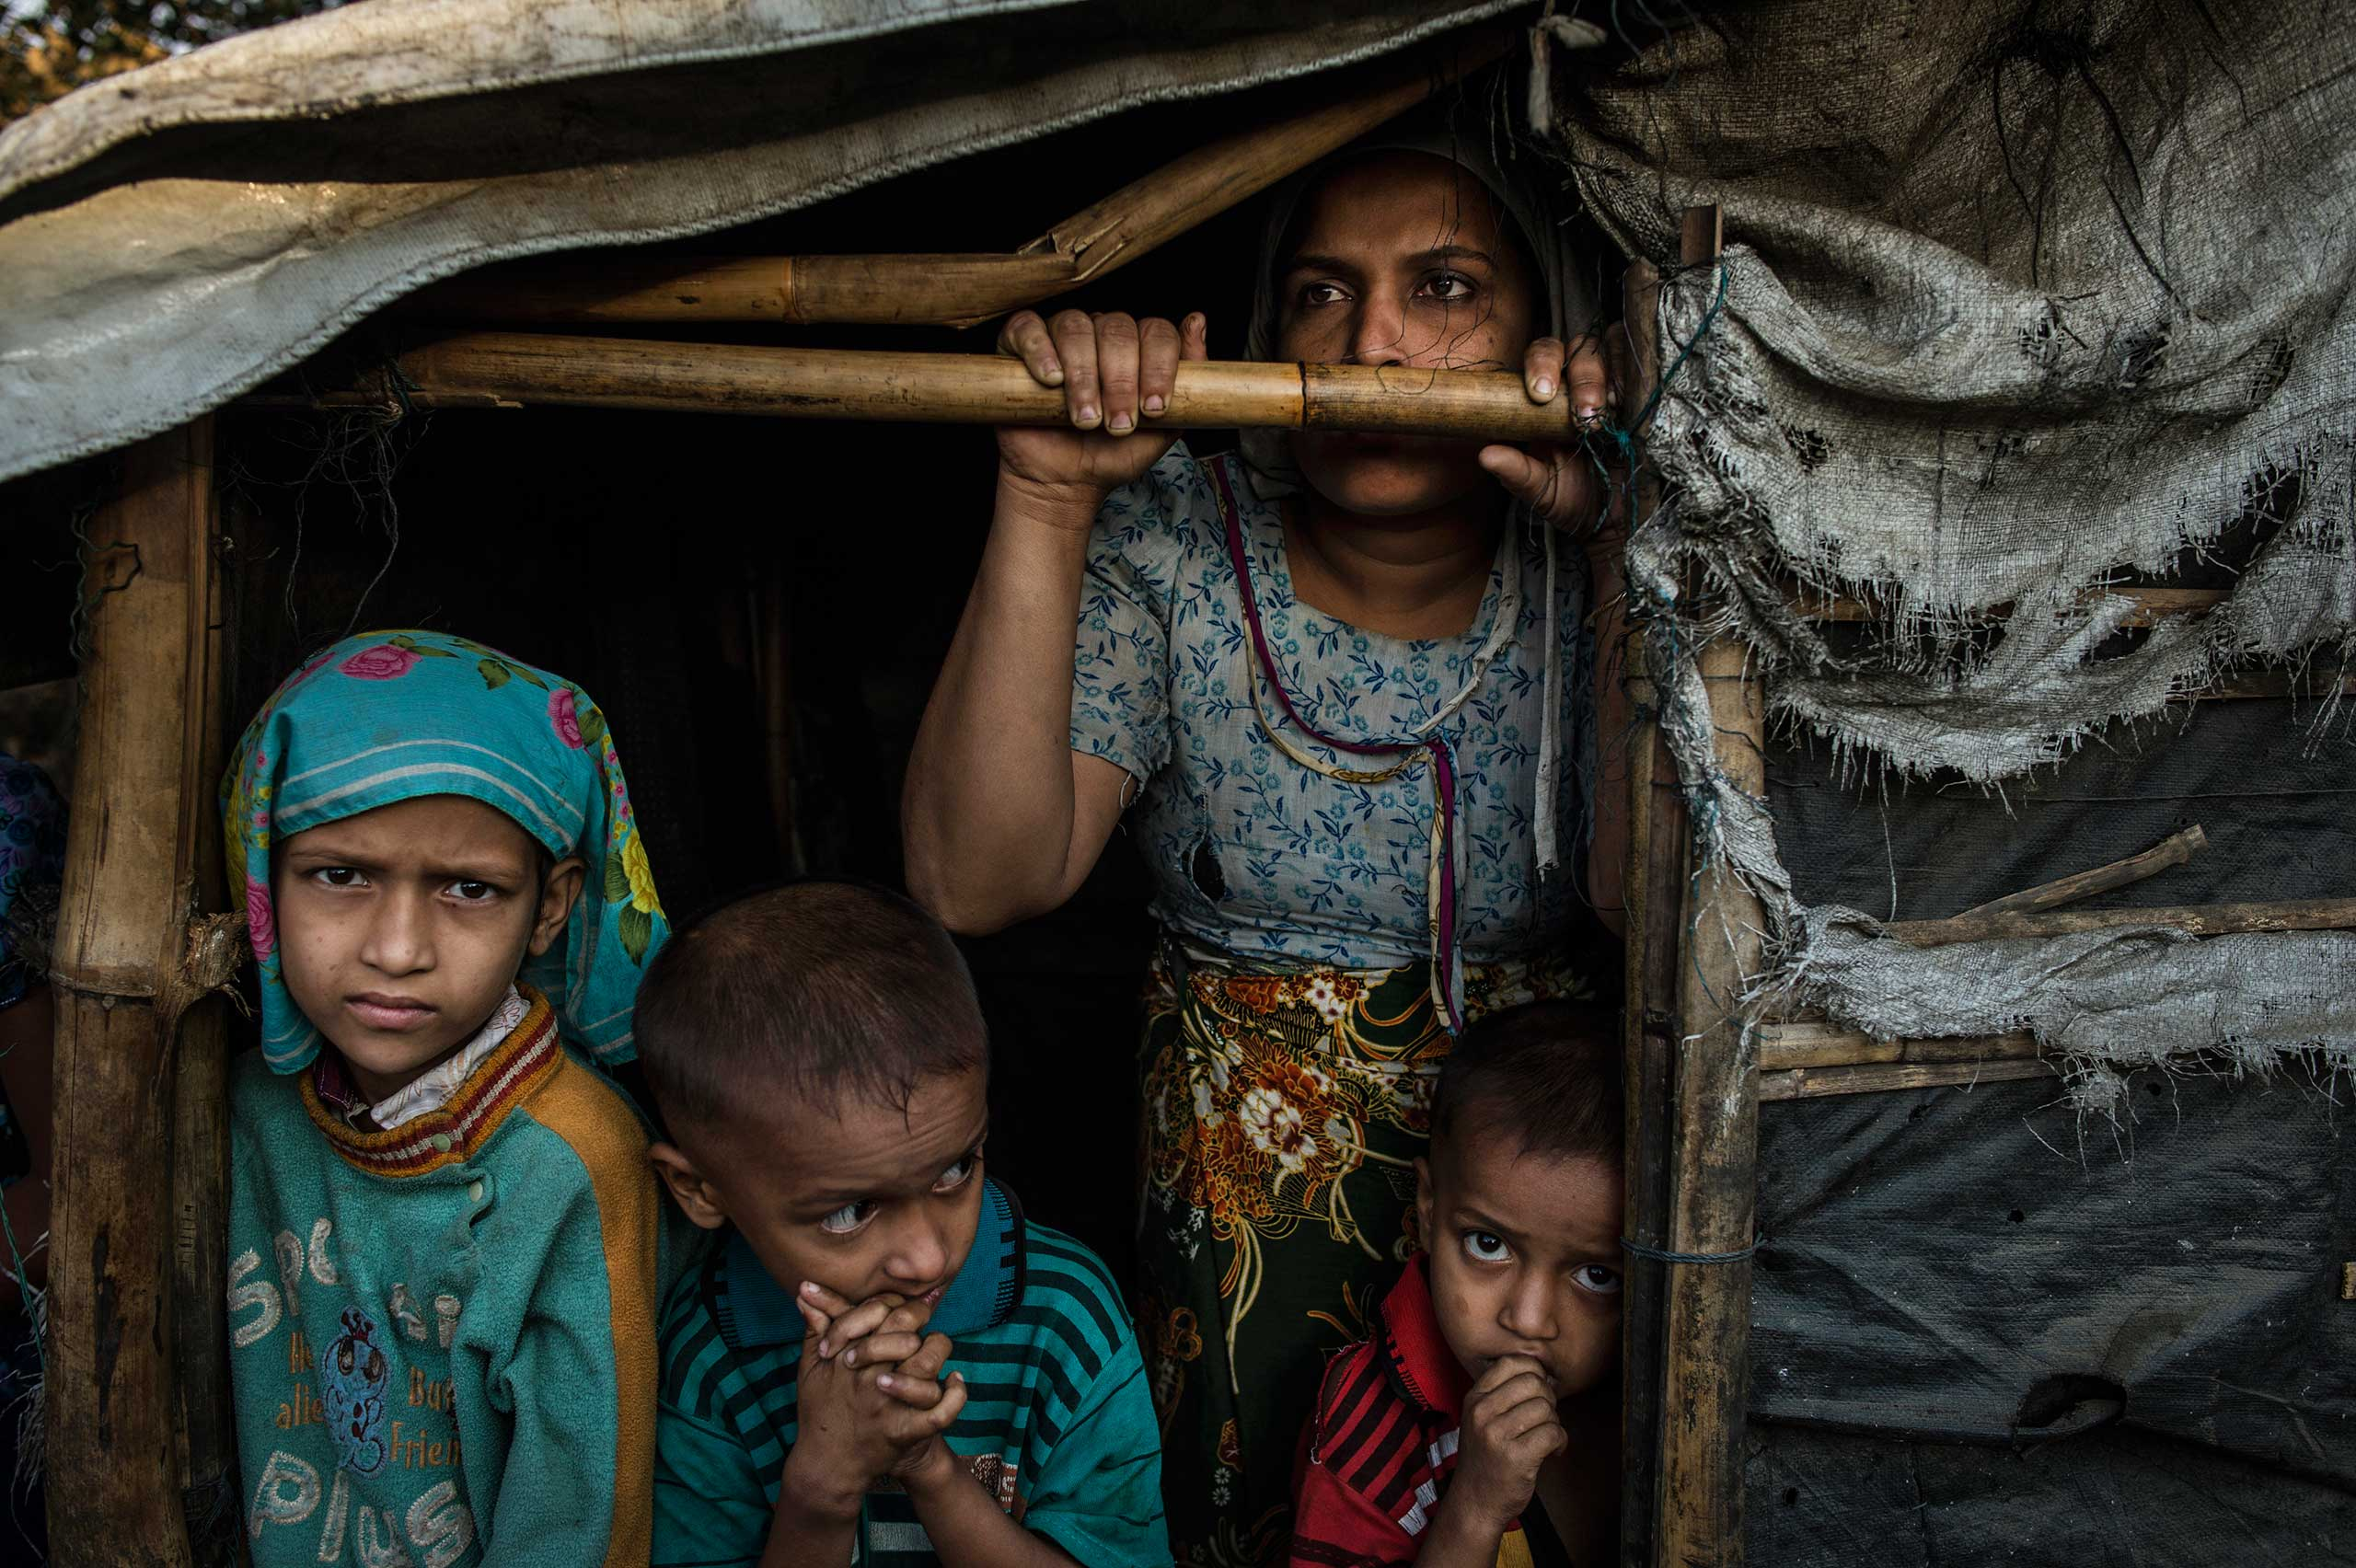 A Rohingya family, Burmese Muslims, live in the Thay Chaung camp for the Internally Displaced outside of Sittwe, which houses nearly 3000 people, Nov. 23, 2015.  The mother, pictured here, claimed all her children were malnourished, but because of the lack of medical professionals in the area, it was impossible to confirm.